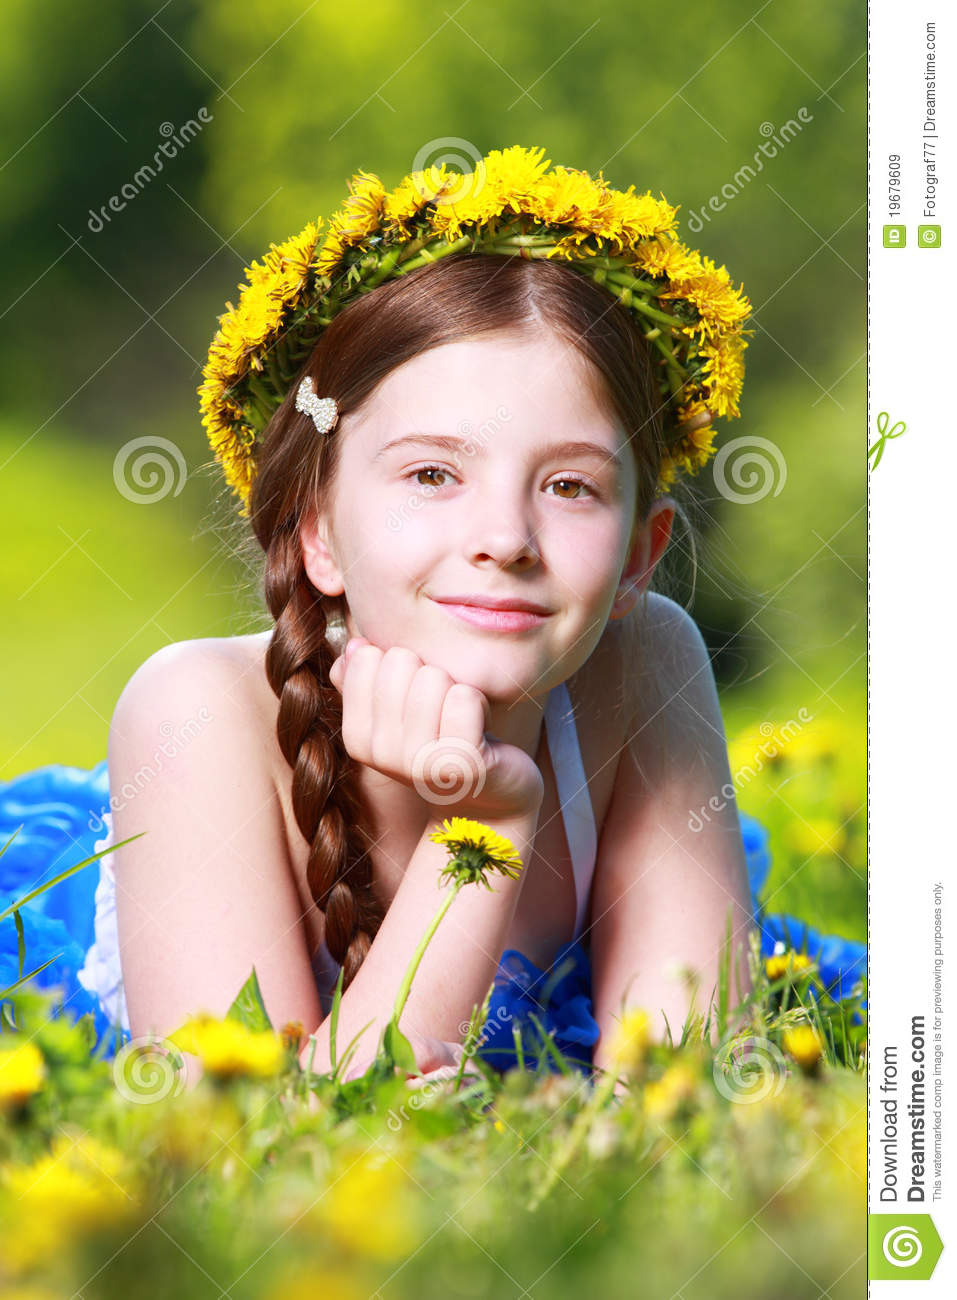 Girl with flower crown stock image image of pleasant 19679609 girl with flower crown izmirmasajfo